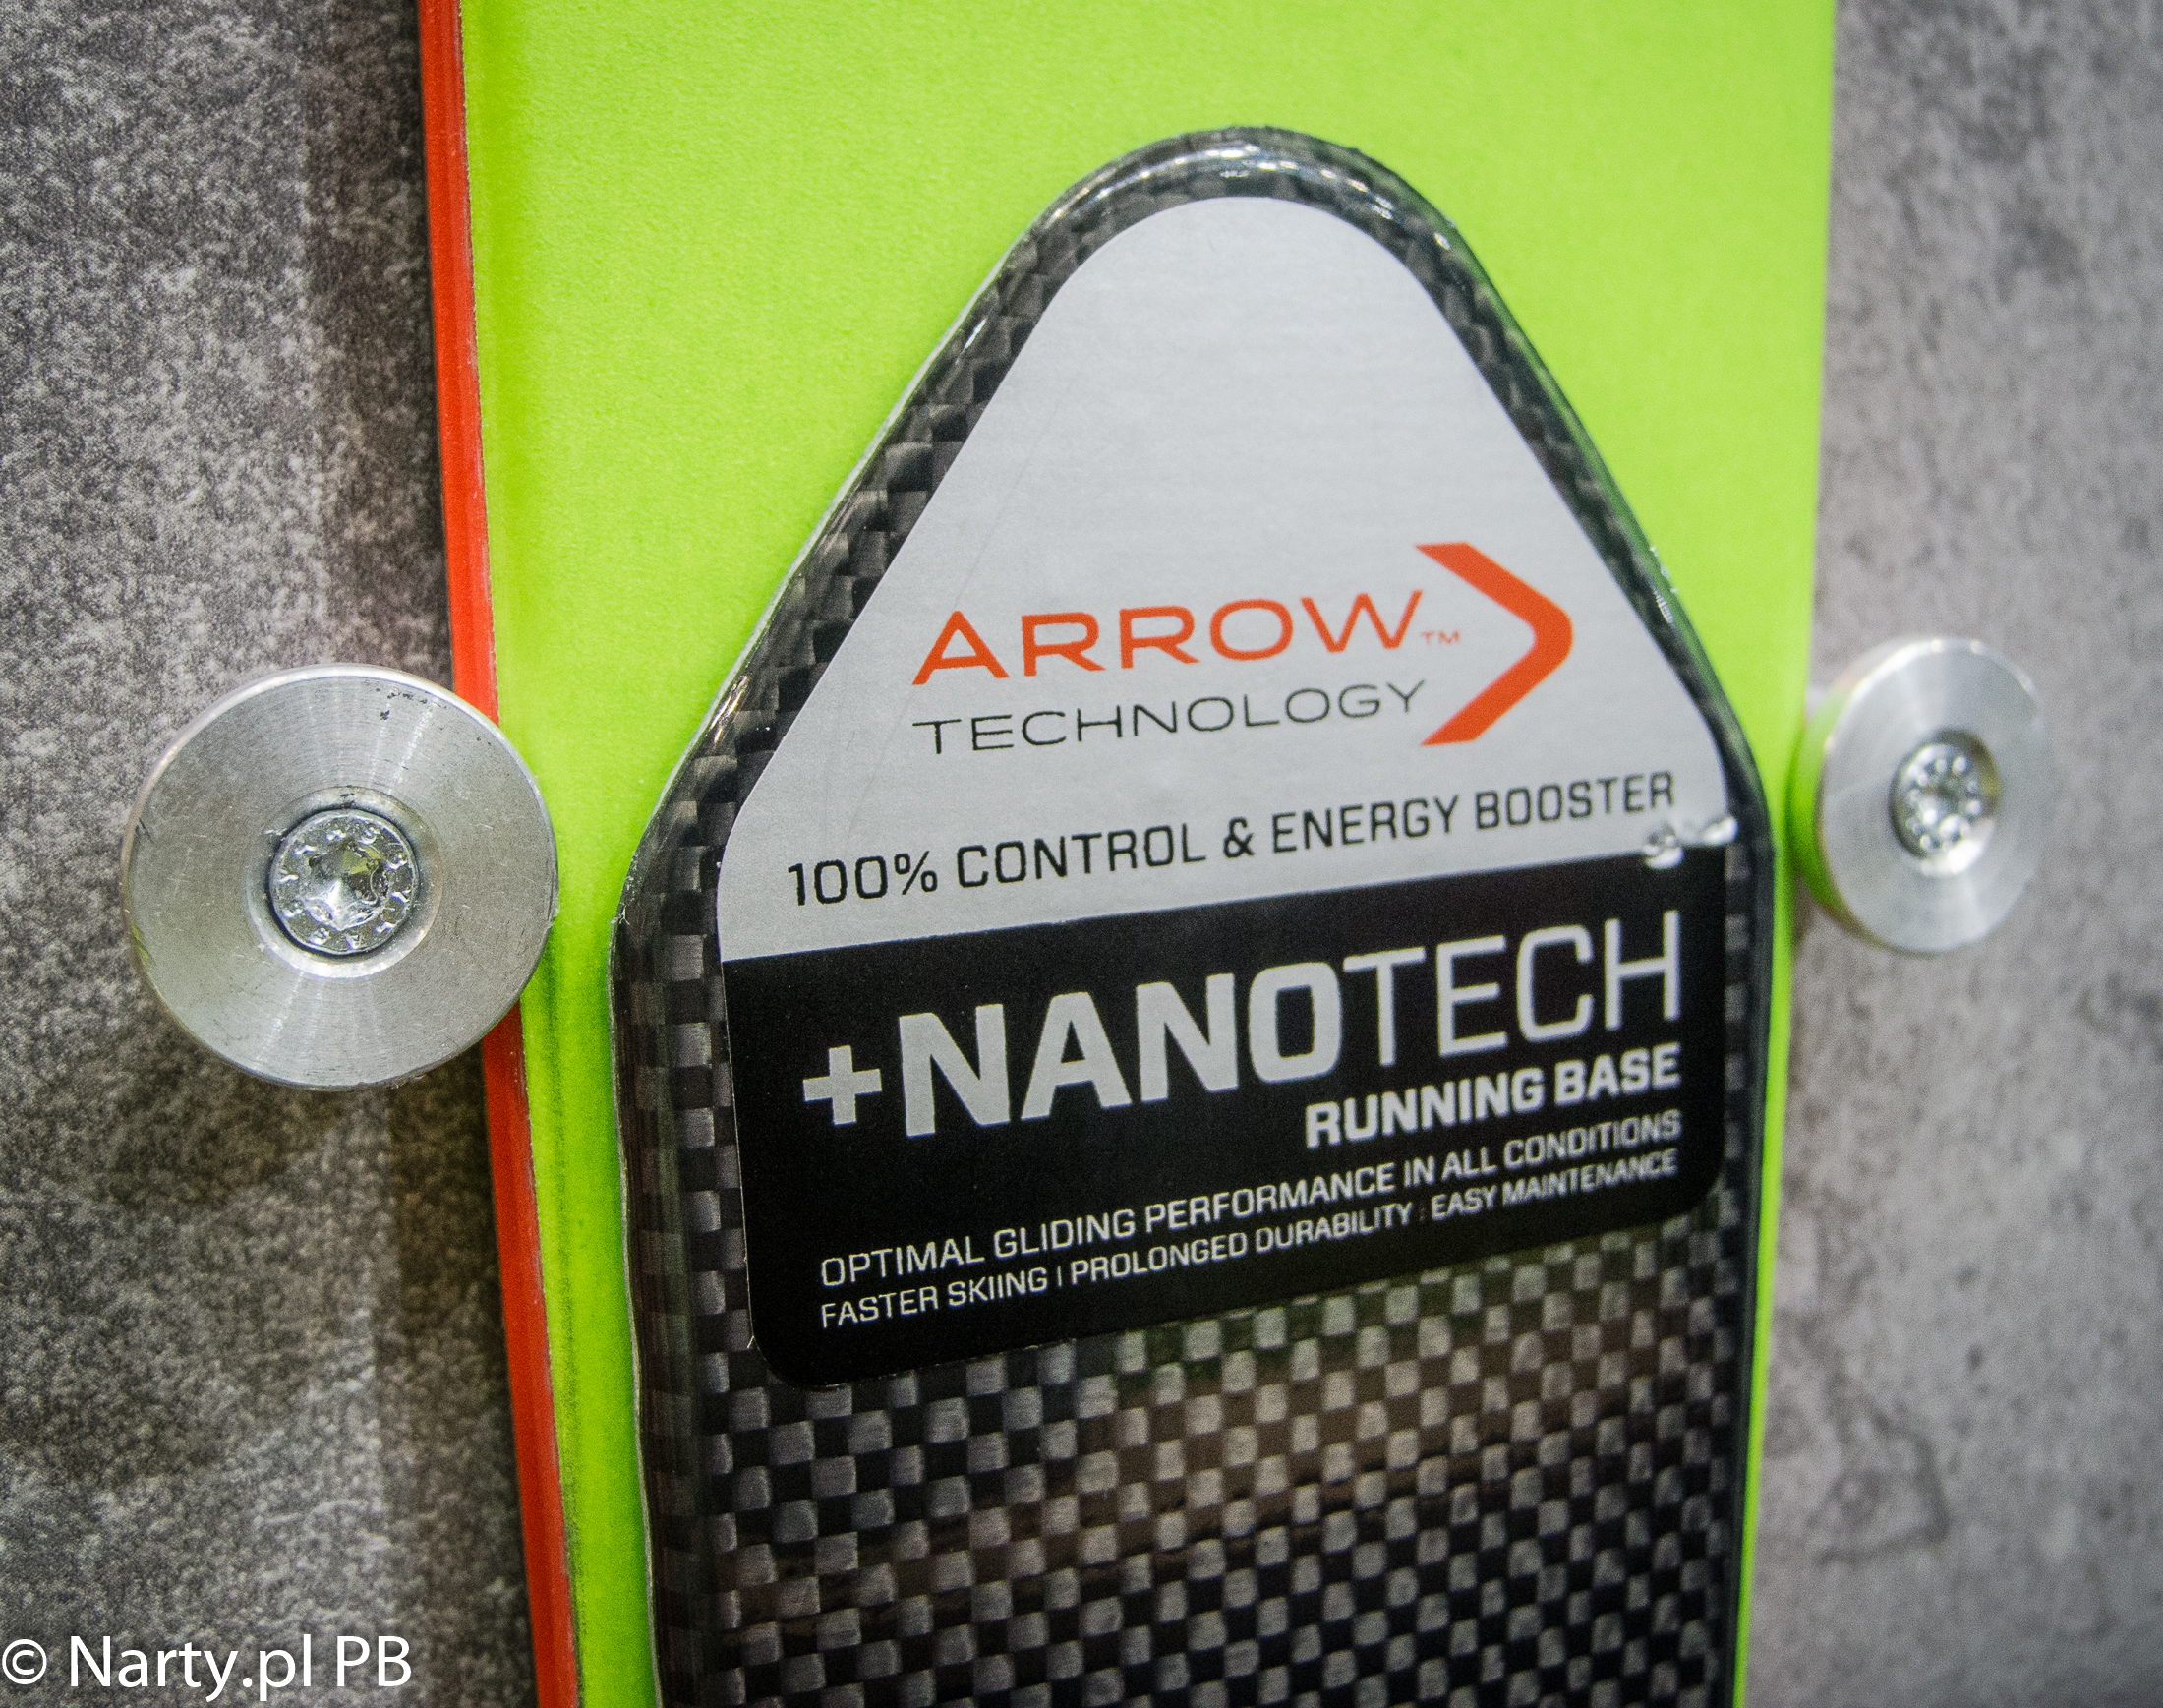 Narty elan 2018/2019 technologia ARROW i ślizg +NANOTECH